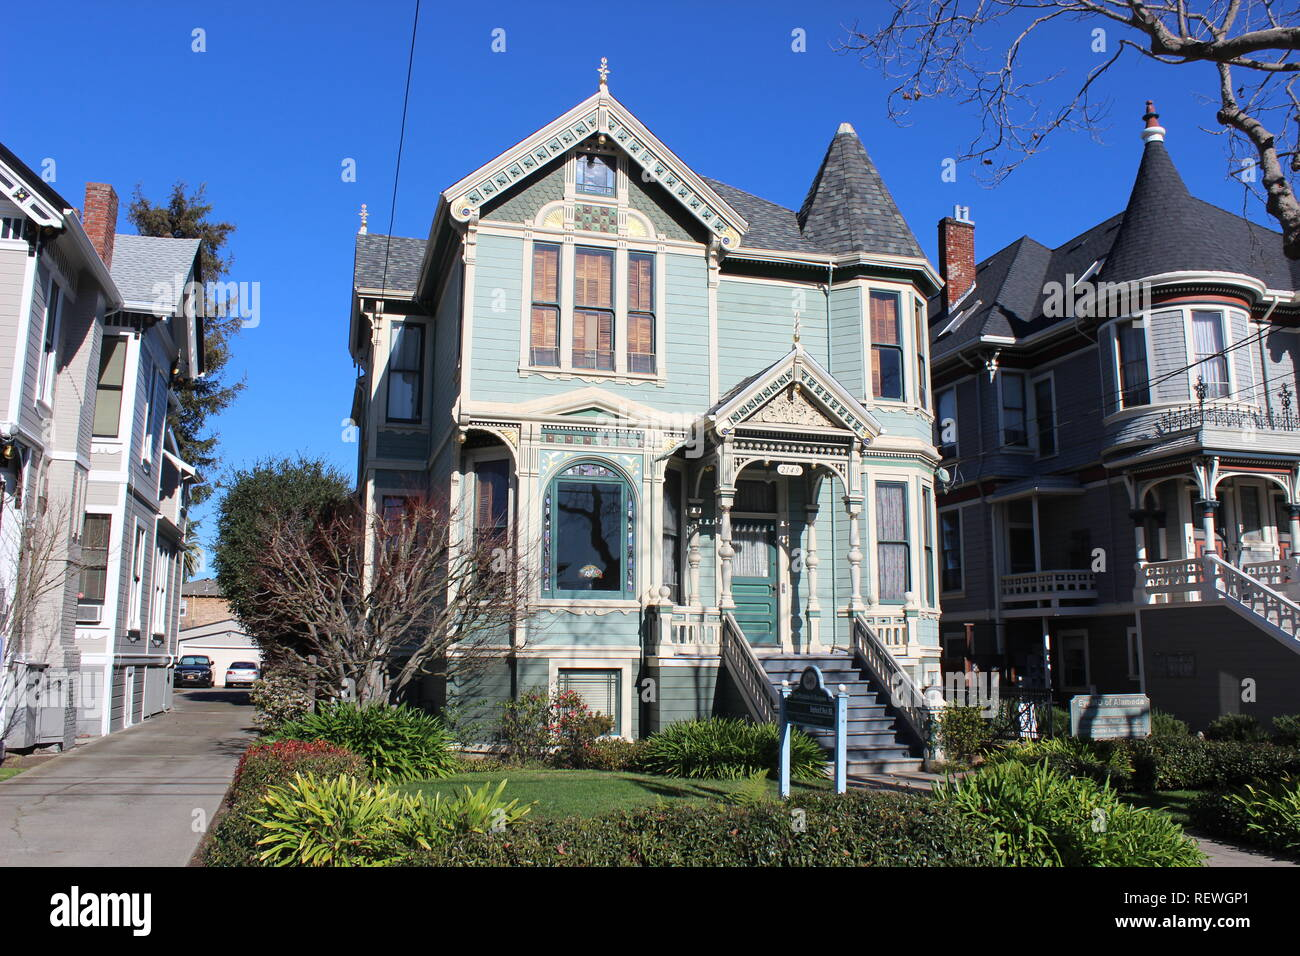 Eastlake House, built 1894, Alameda, California - Stock Image